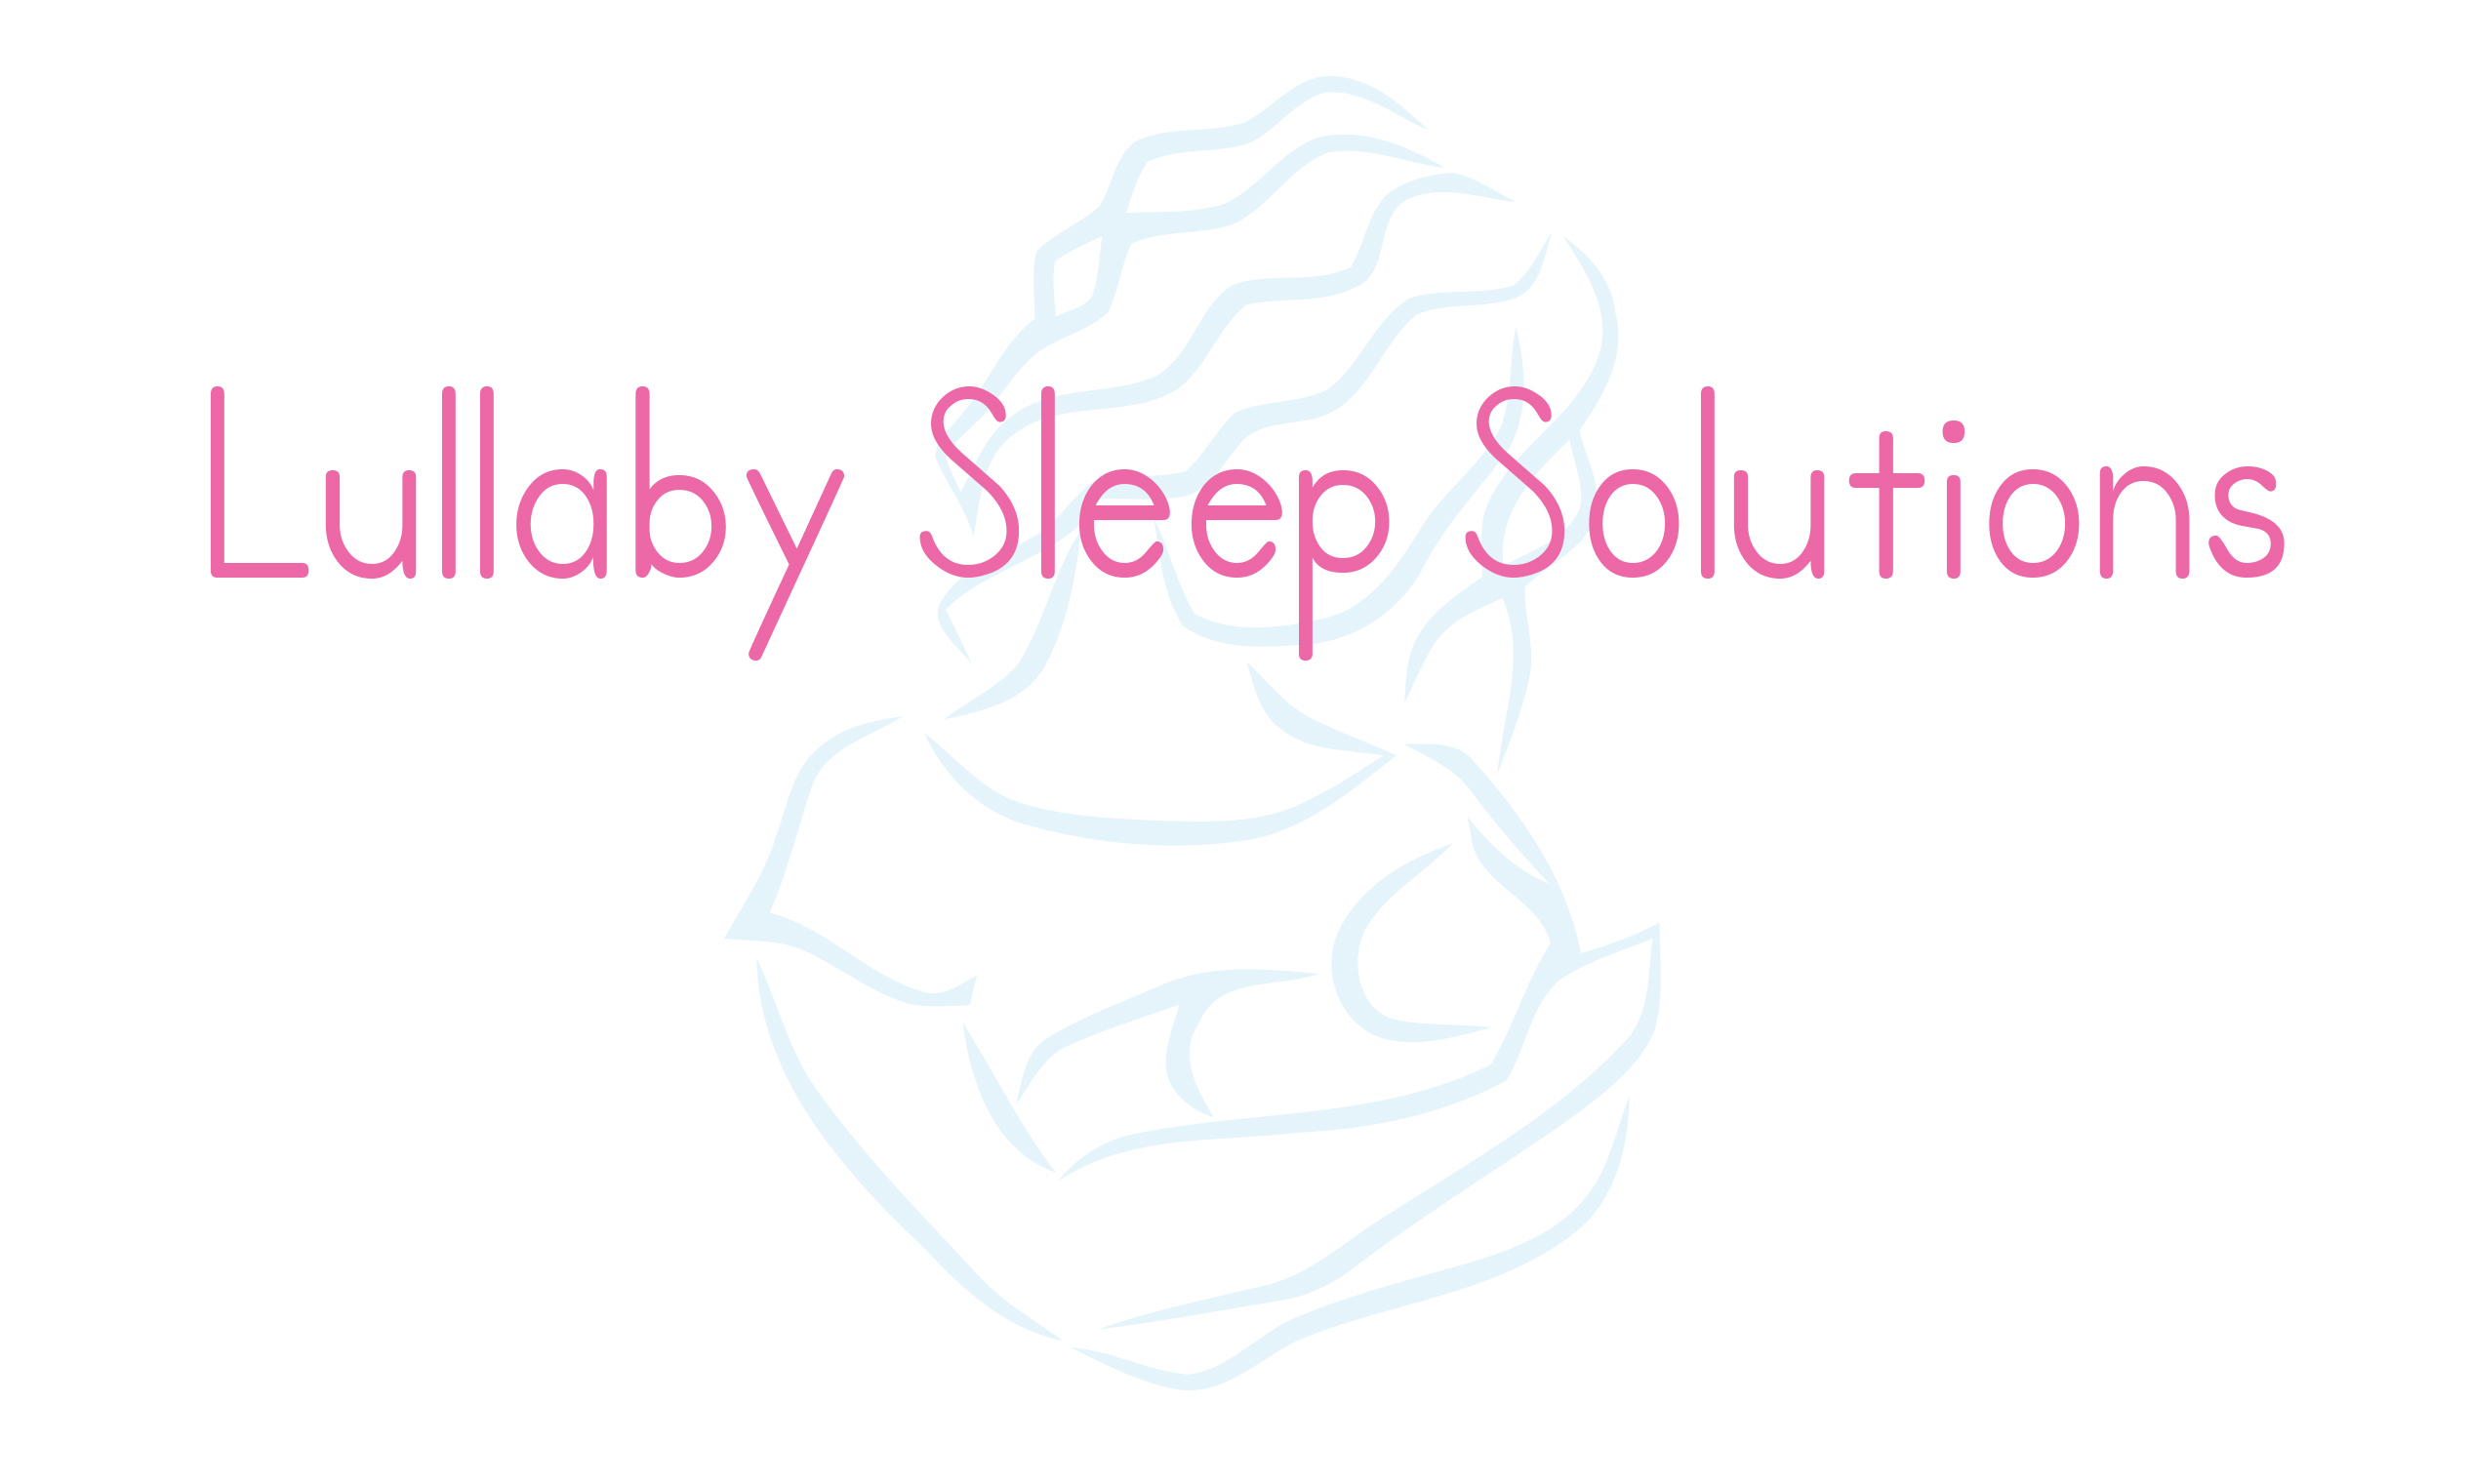 Child Sleep Consultant Certification Online Program - Lullaby Sleep Solutions